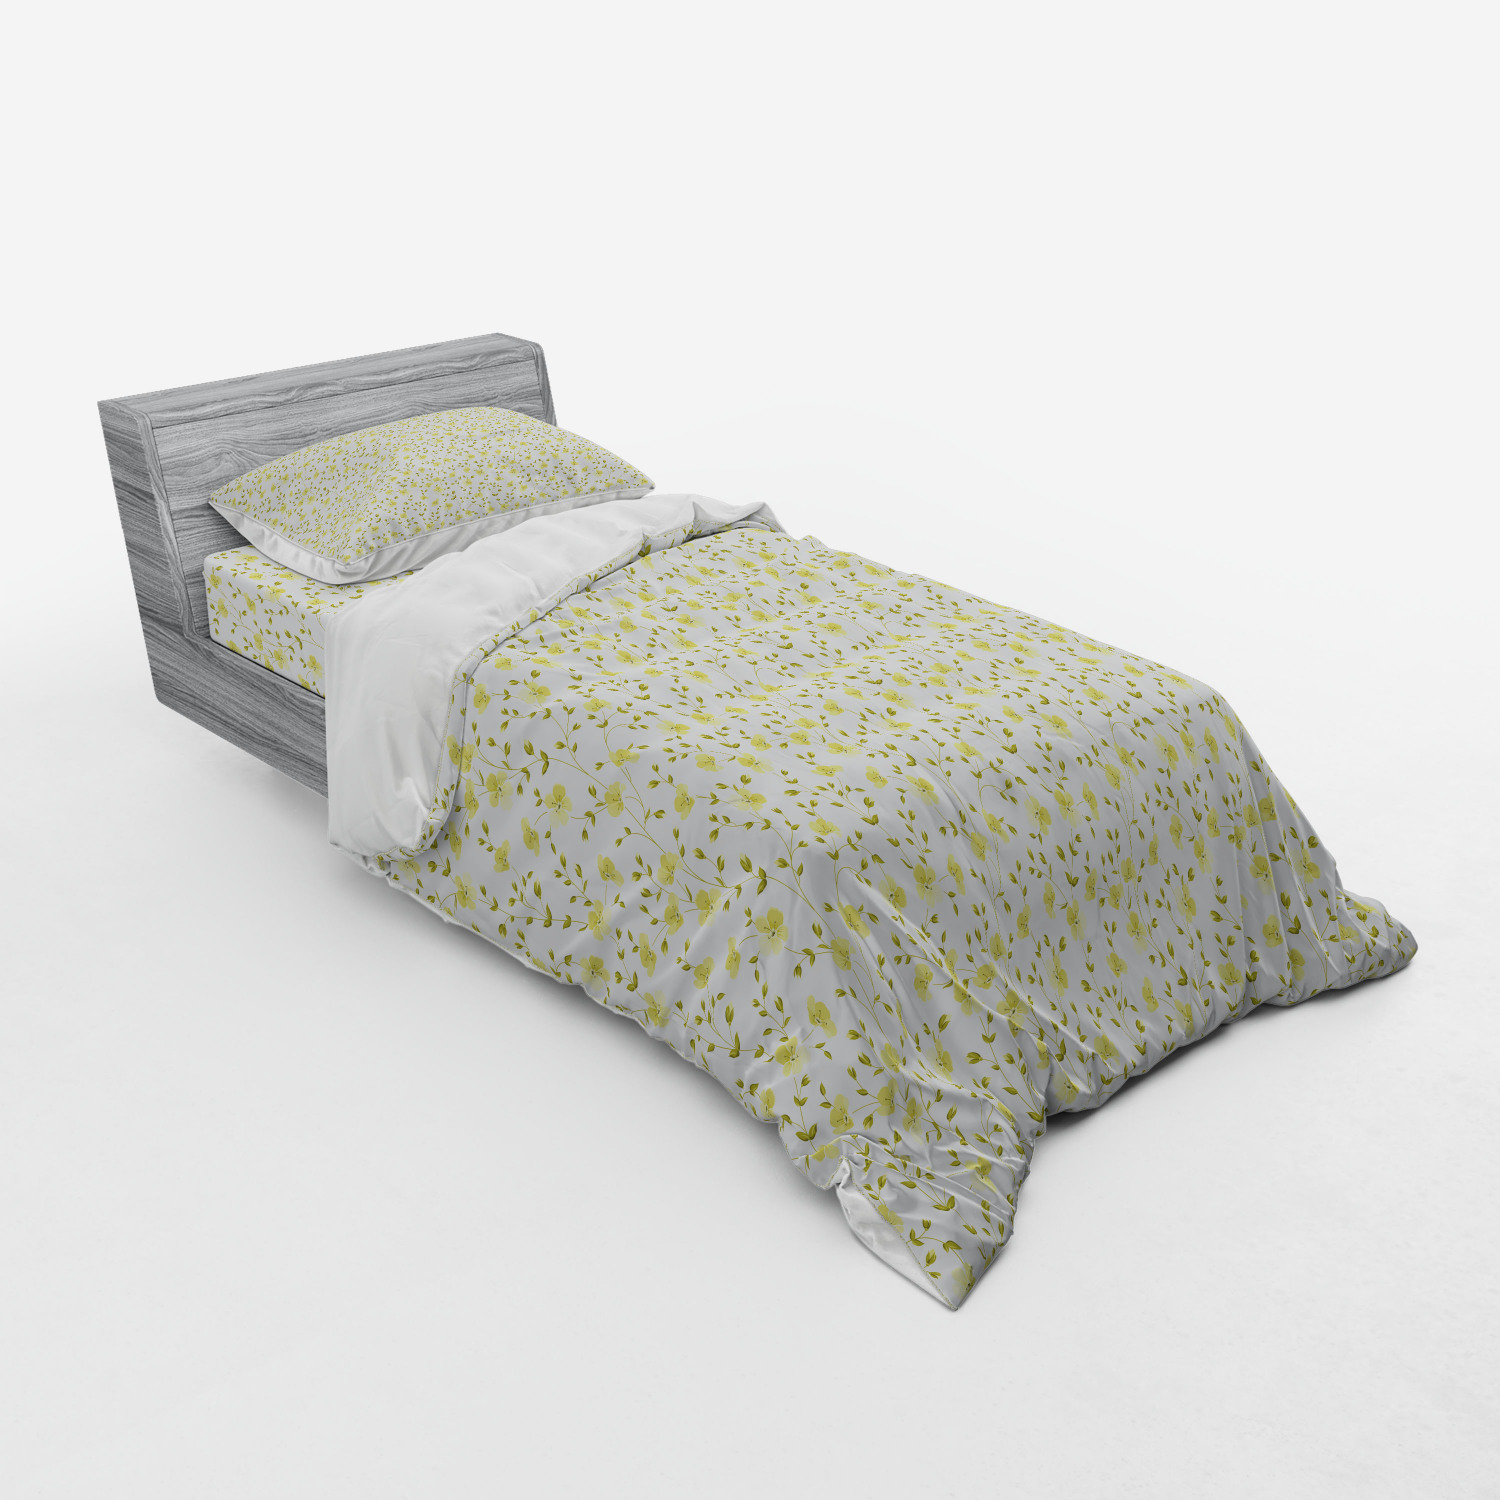 thumbnail 73 - Ambesonne Summer Bedding Set Duvet Cover Sham Fitted Sheet in 3 Sizes